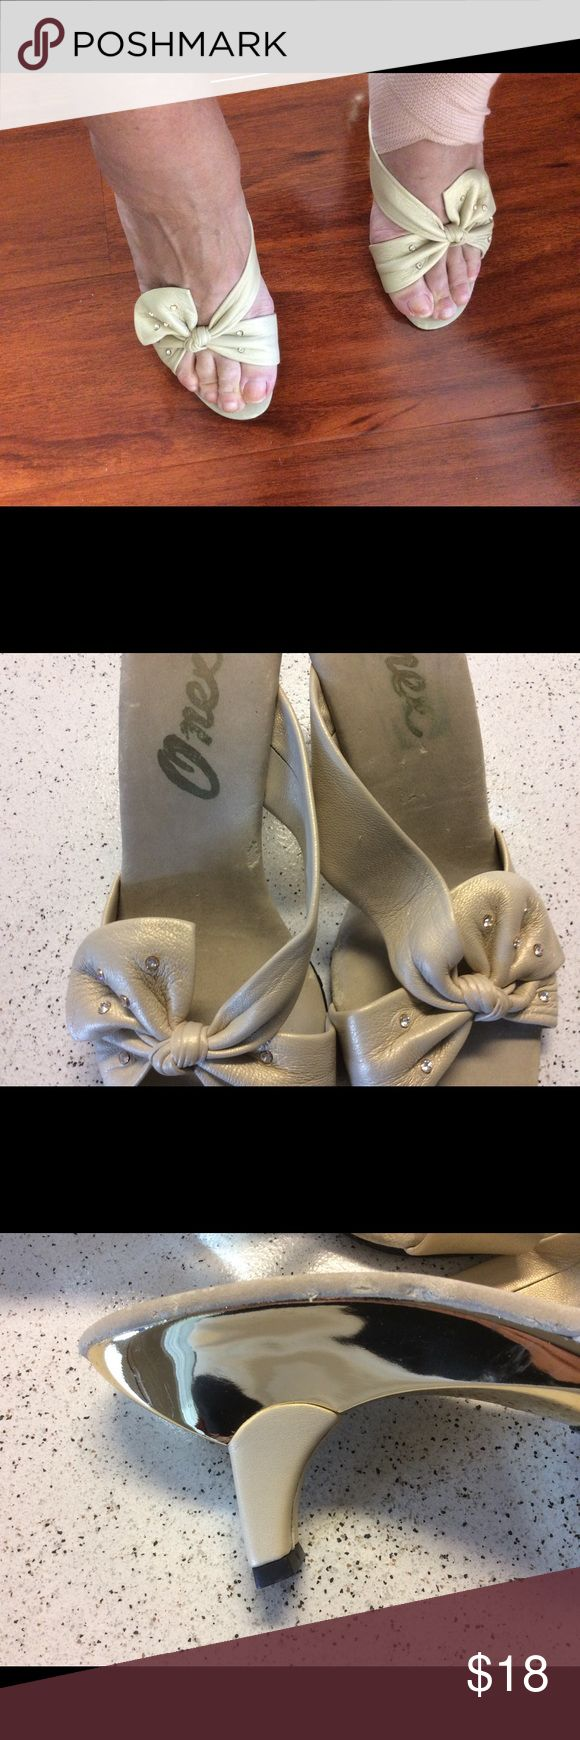 Onex pumps with rhinestones. The classic Onex shoe with leather and its signature design will wow anyone! Has rhinestone accents in the bow. These shoes were never worn but do show a slight discoloration on the inside of the shoe. onex Shoes Sandals